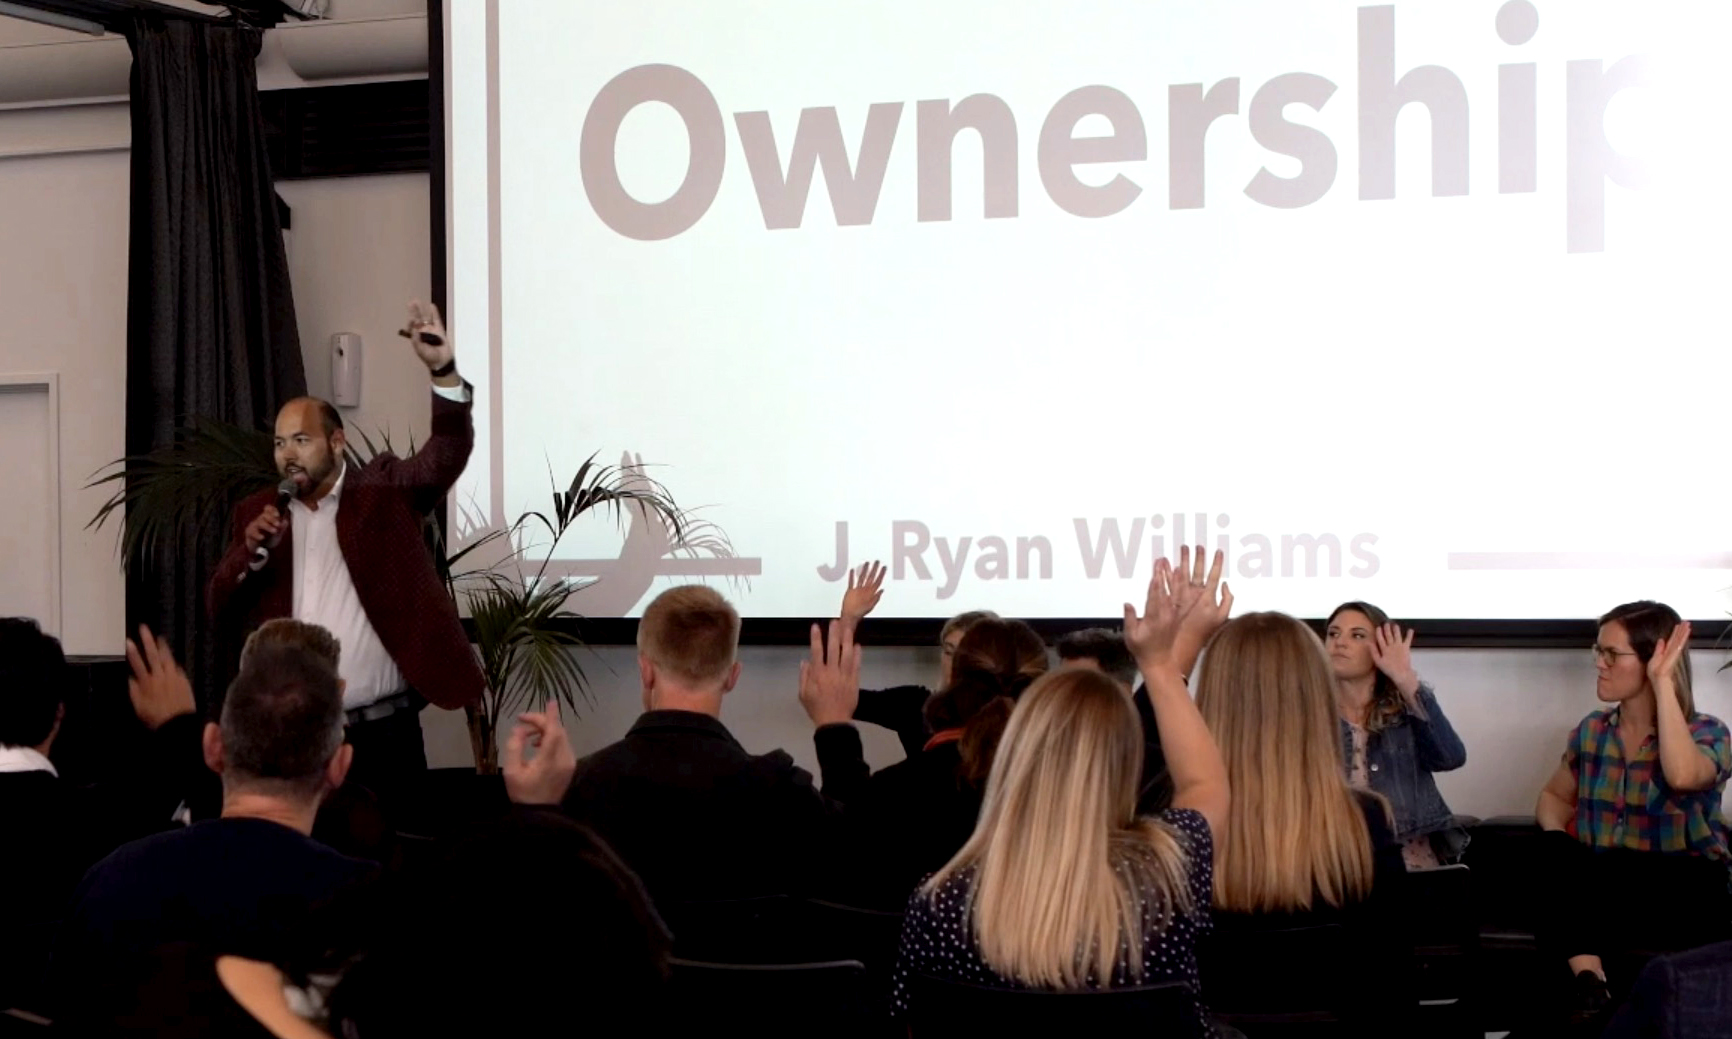 J. Ryan Williams, Executive Coach and Speaker for Tech Companies